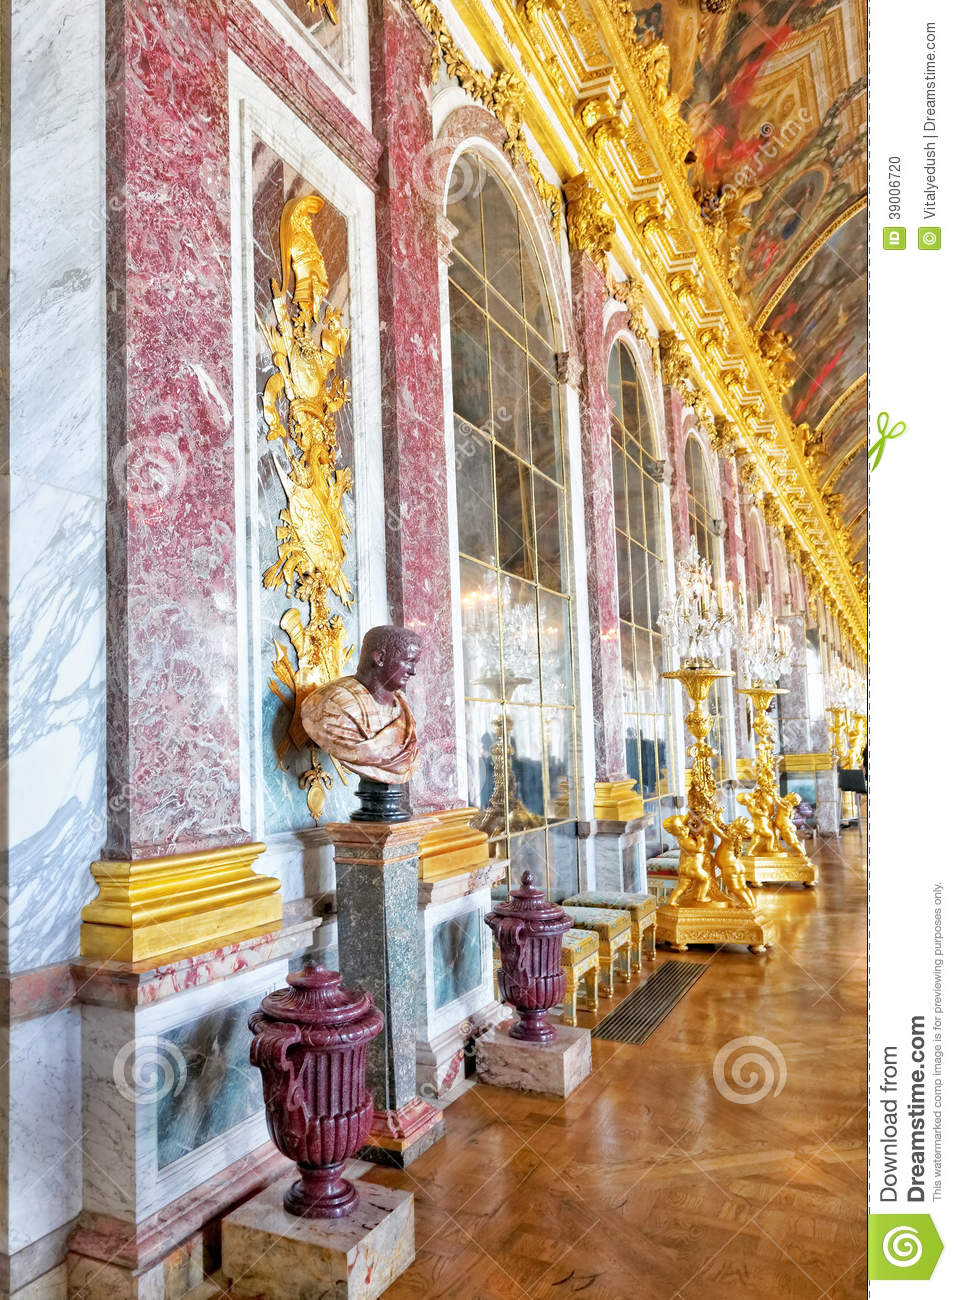 Ch teau int rieur de versailles photo stock image 39006720 for Chateau de versailles interieur